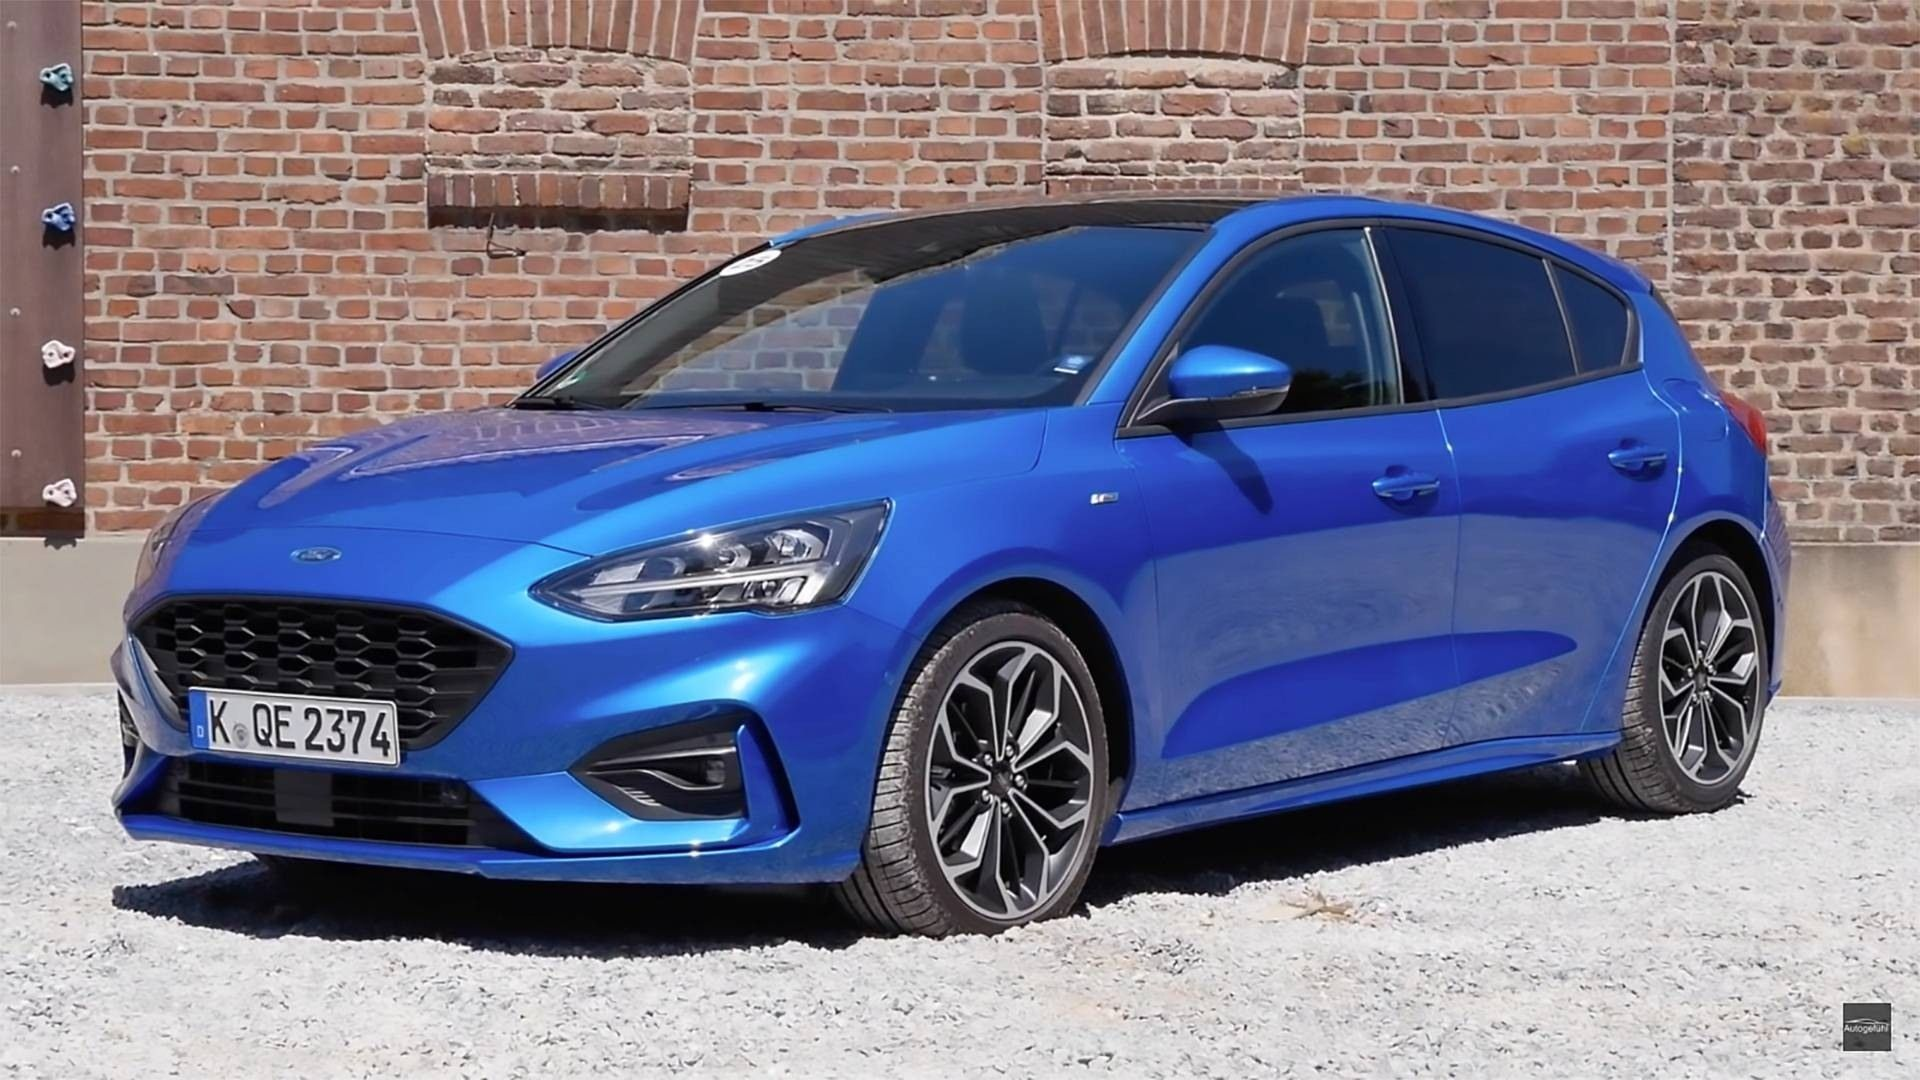 2019 Ford Focus New Interior Ford Focus Ford Focus St 2019 Ford